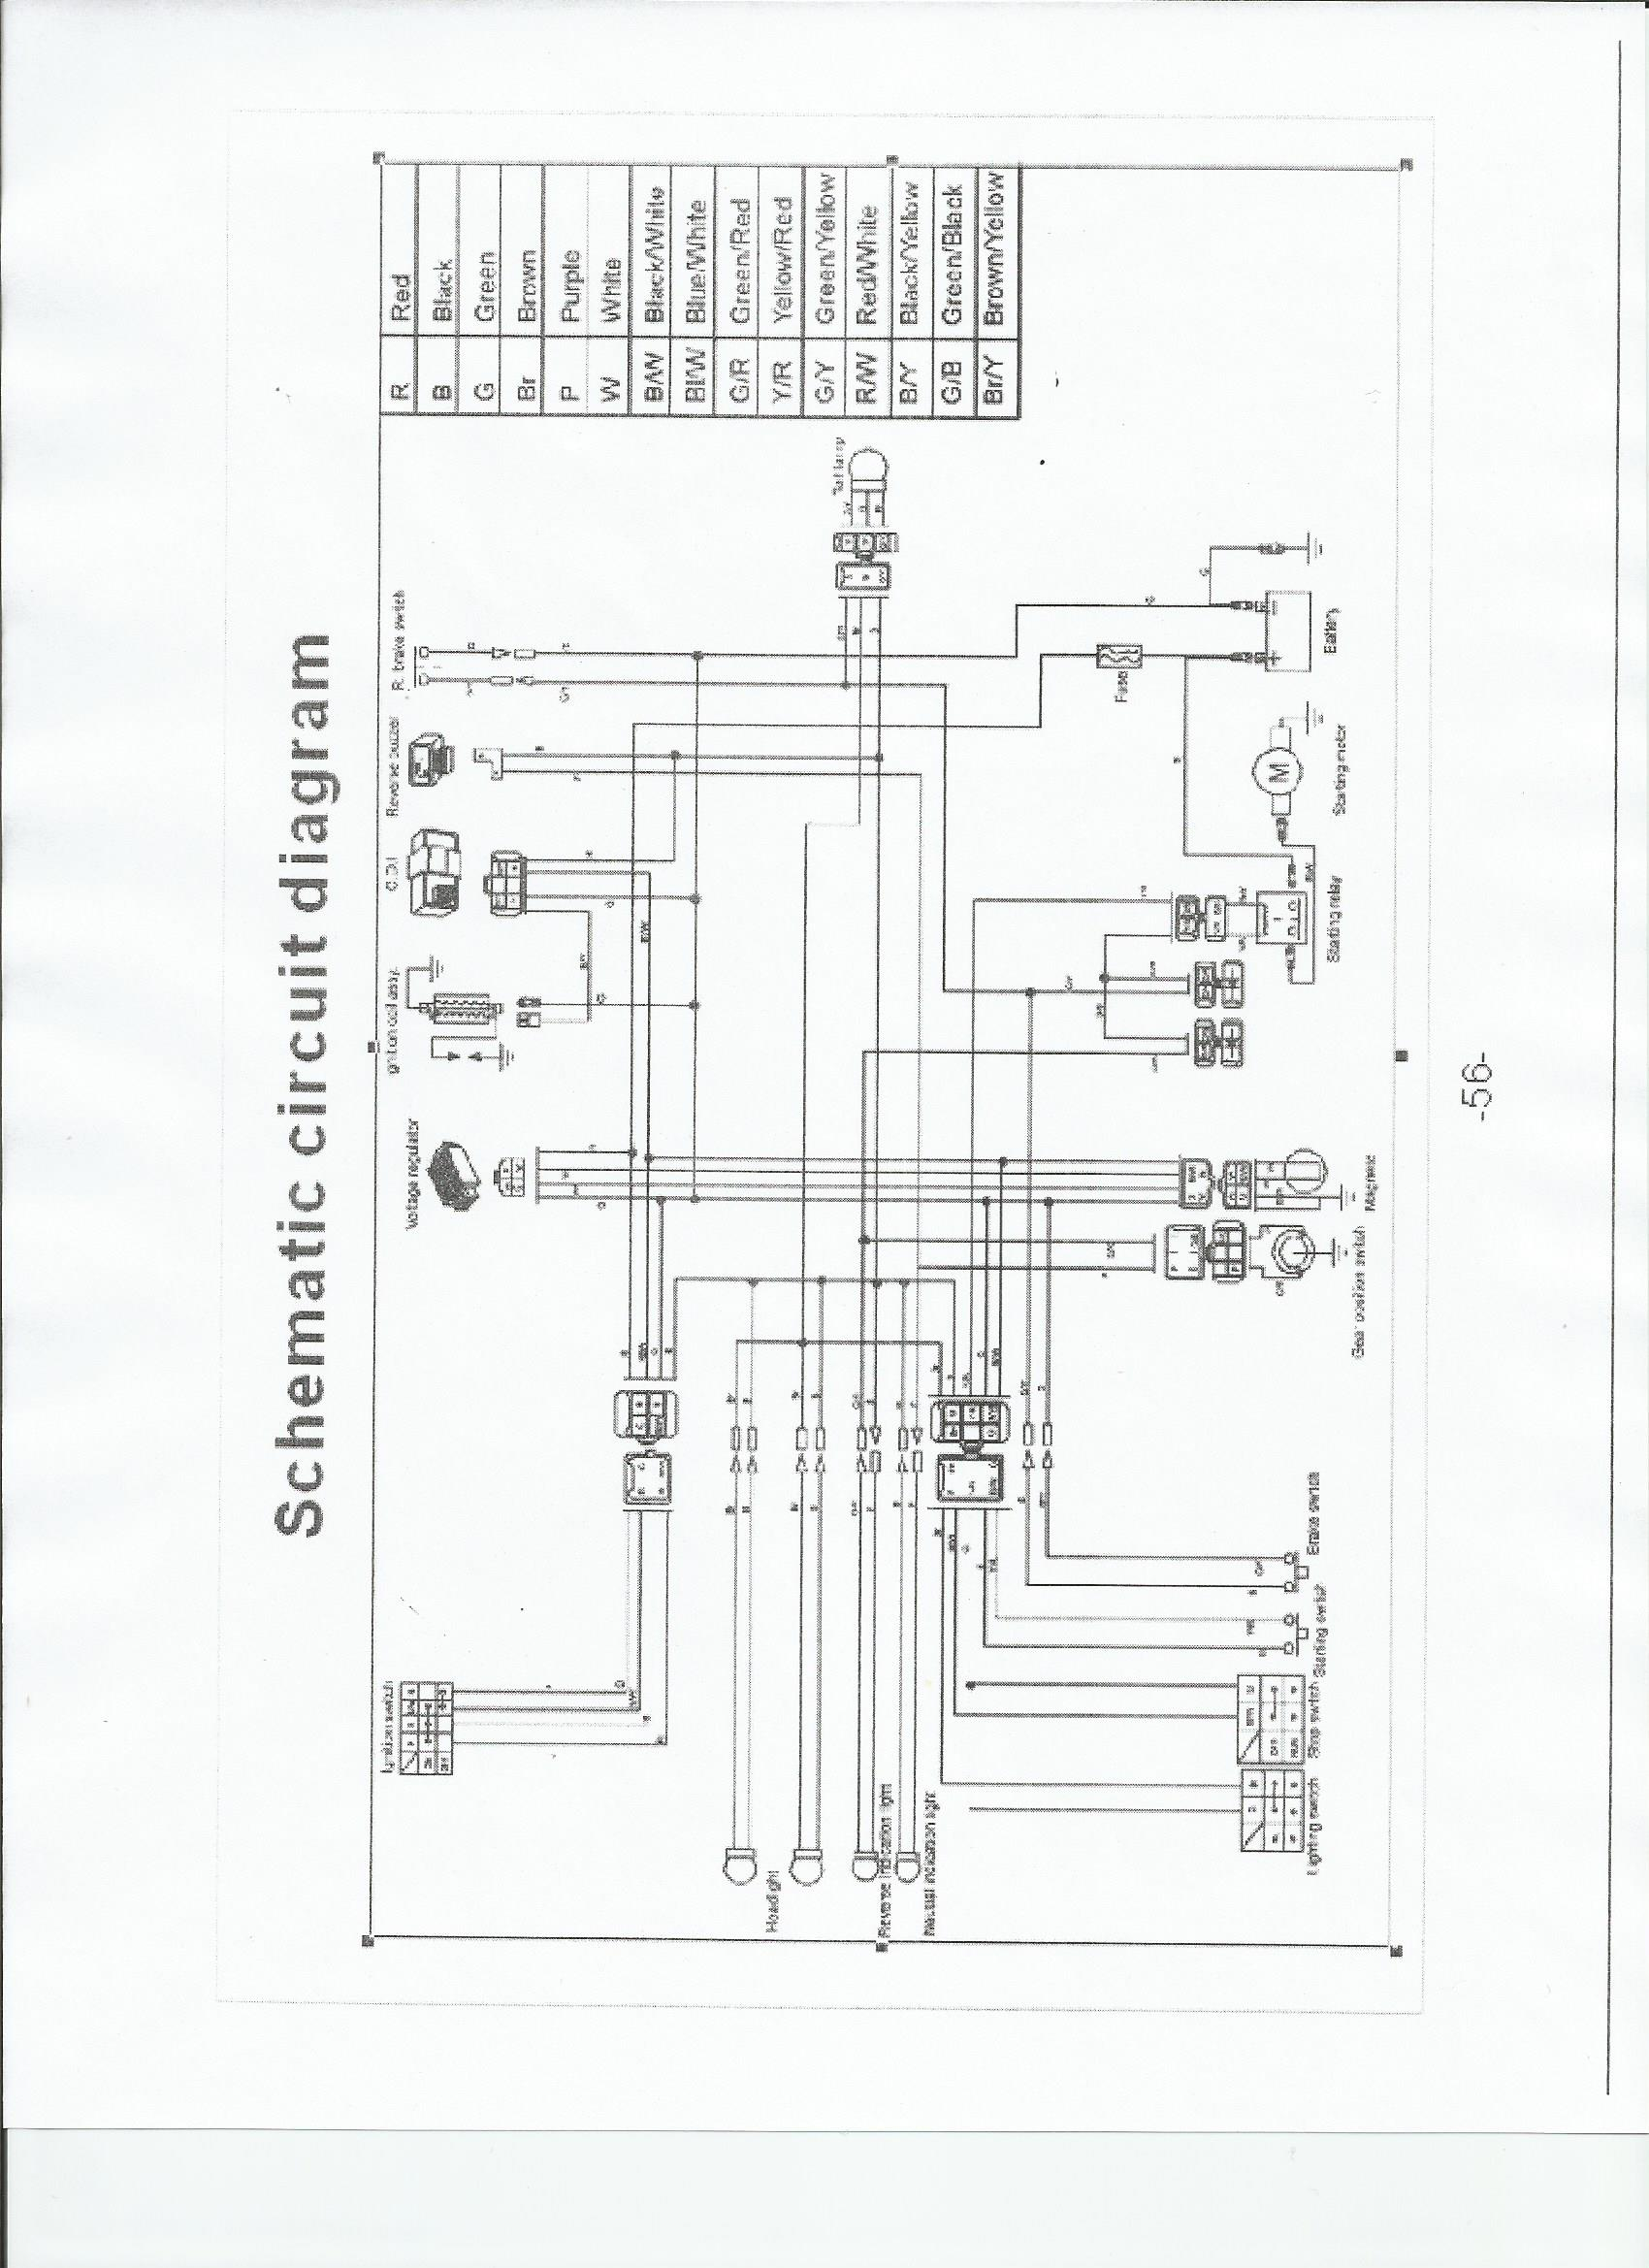 taotao mini and youth atv wiring schematic familygokarts support atv630 wiring diagram atv wiring diagram [ 1700 x 2338 Pixel ]